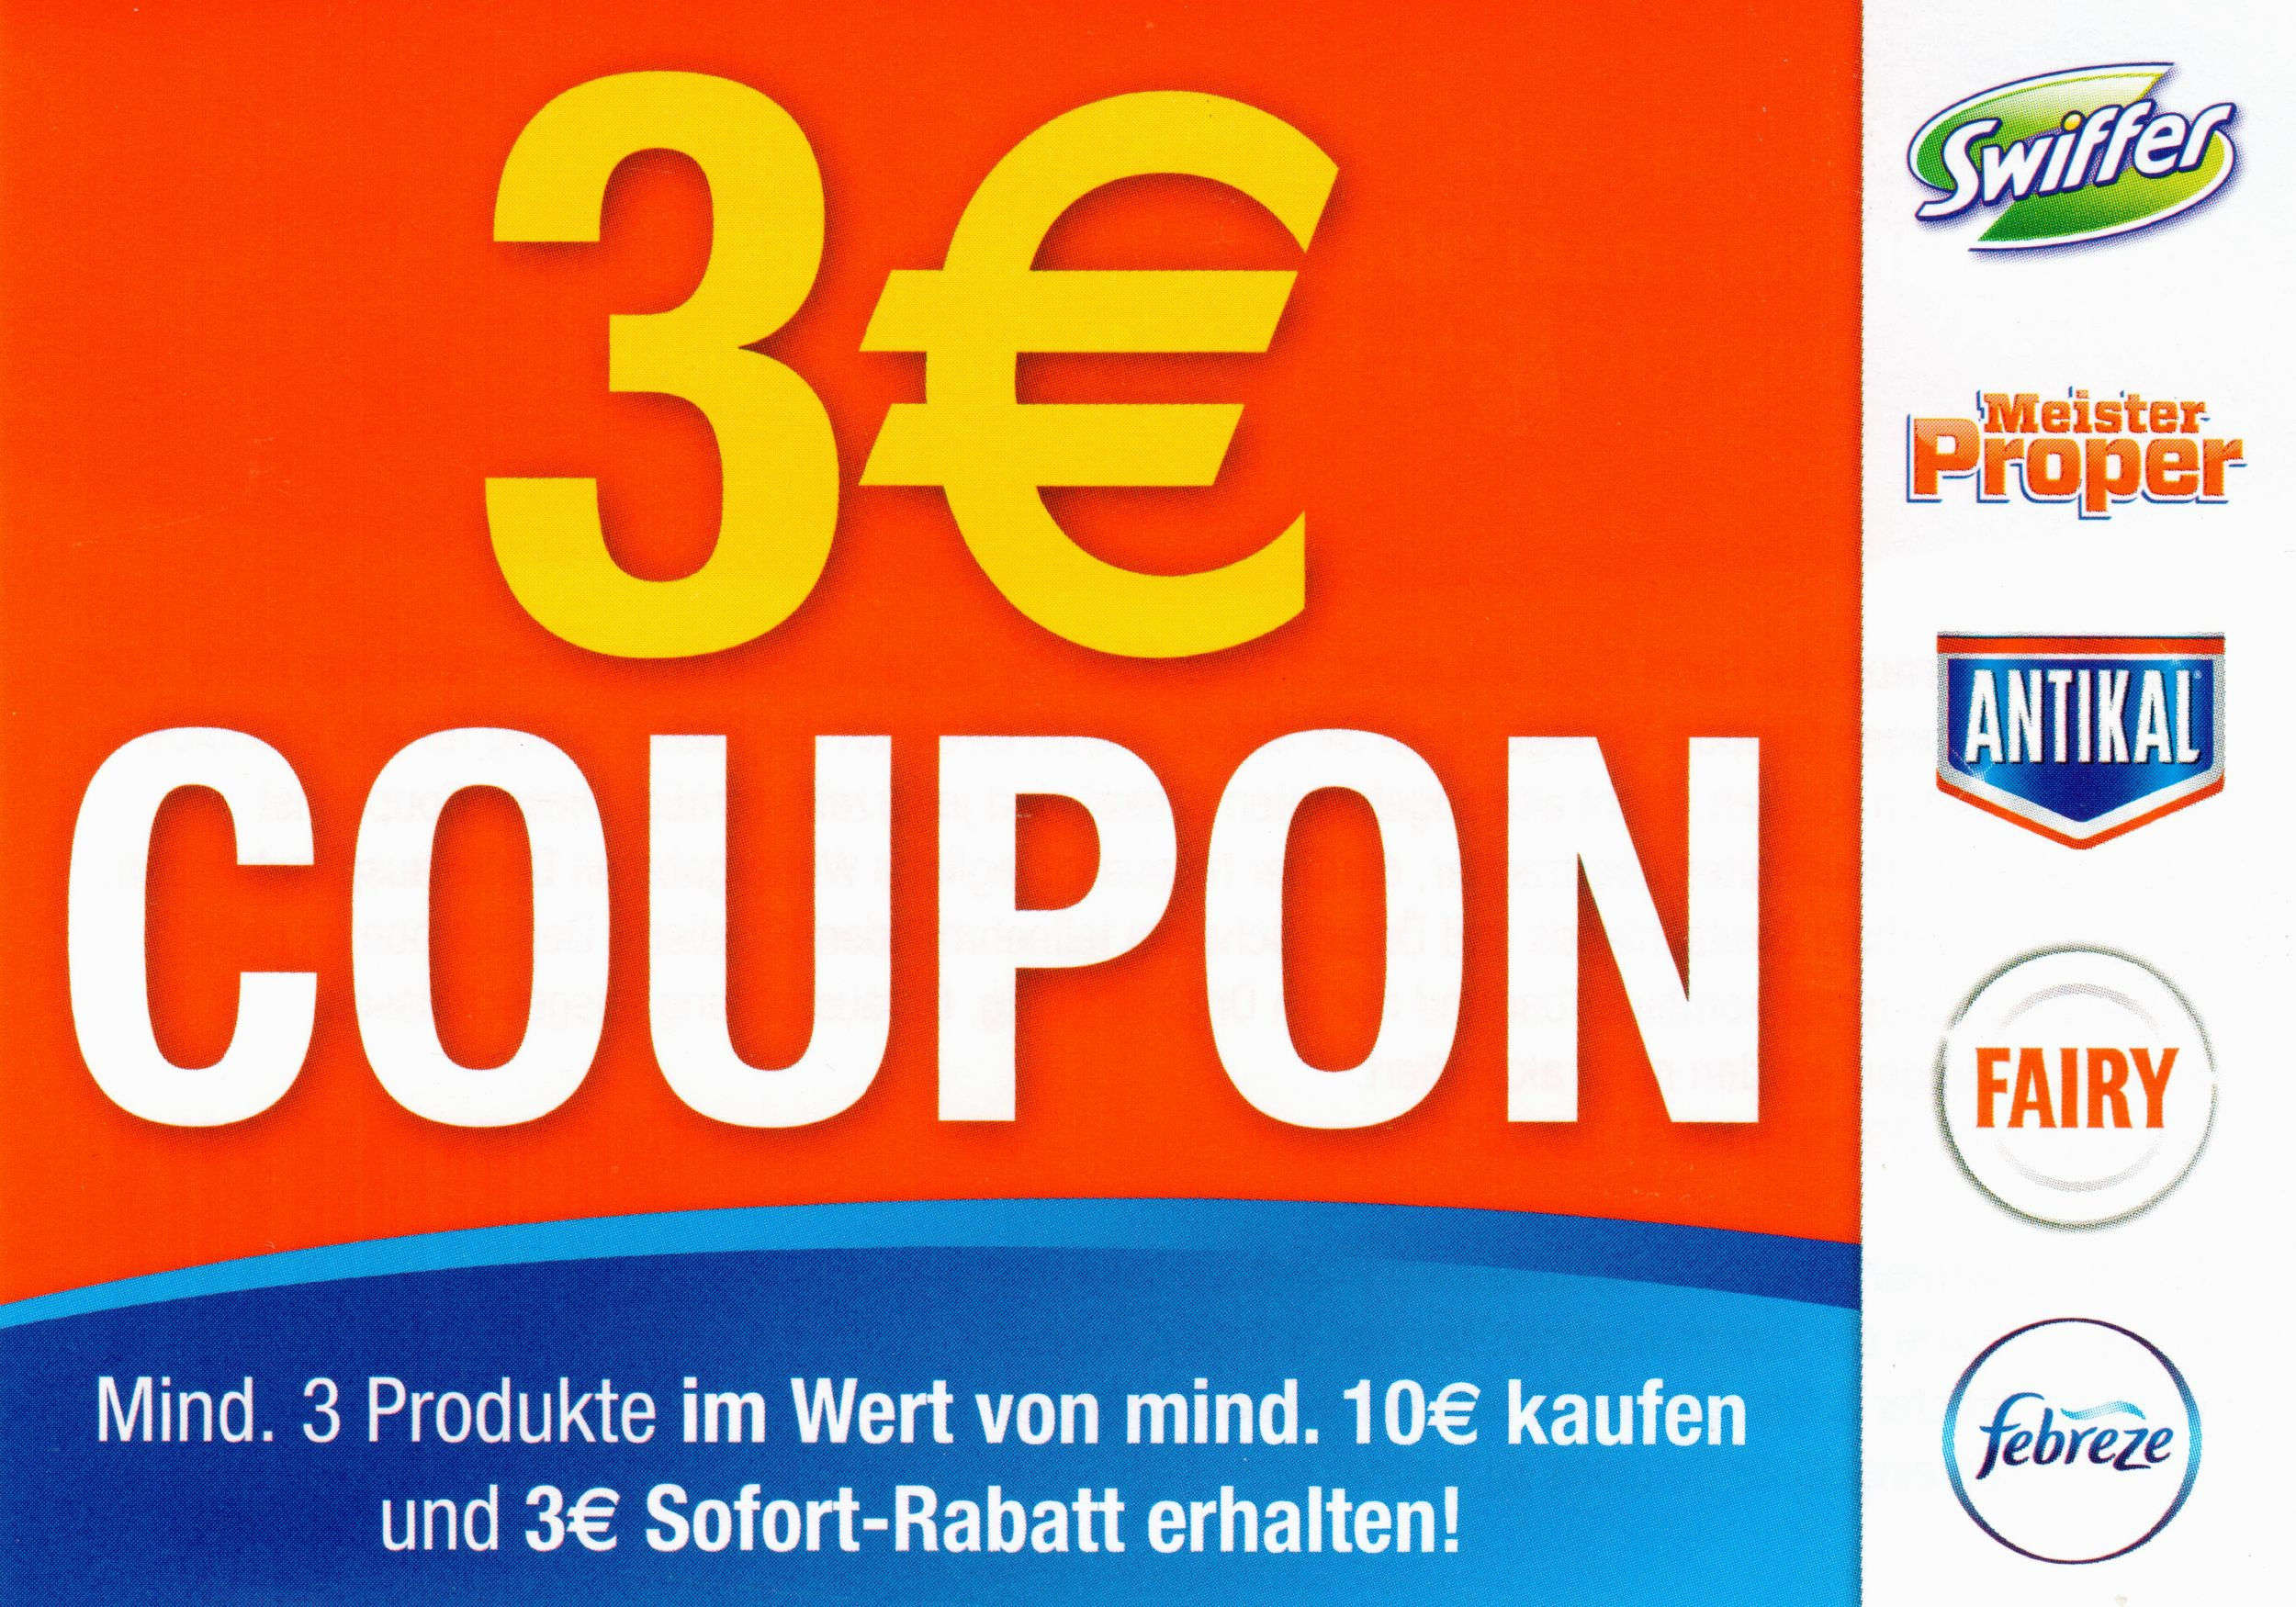 Mr coupon deals